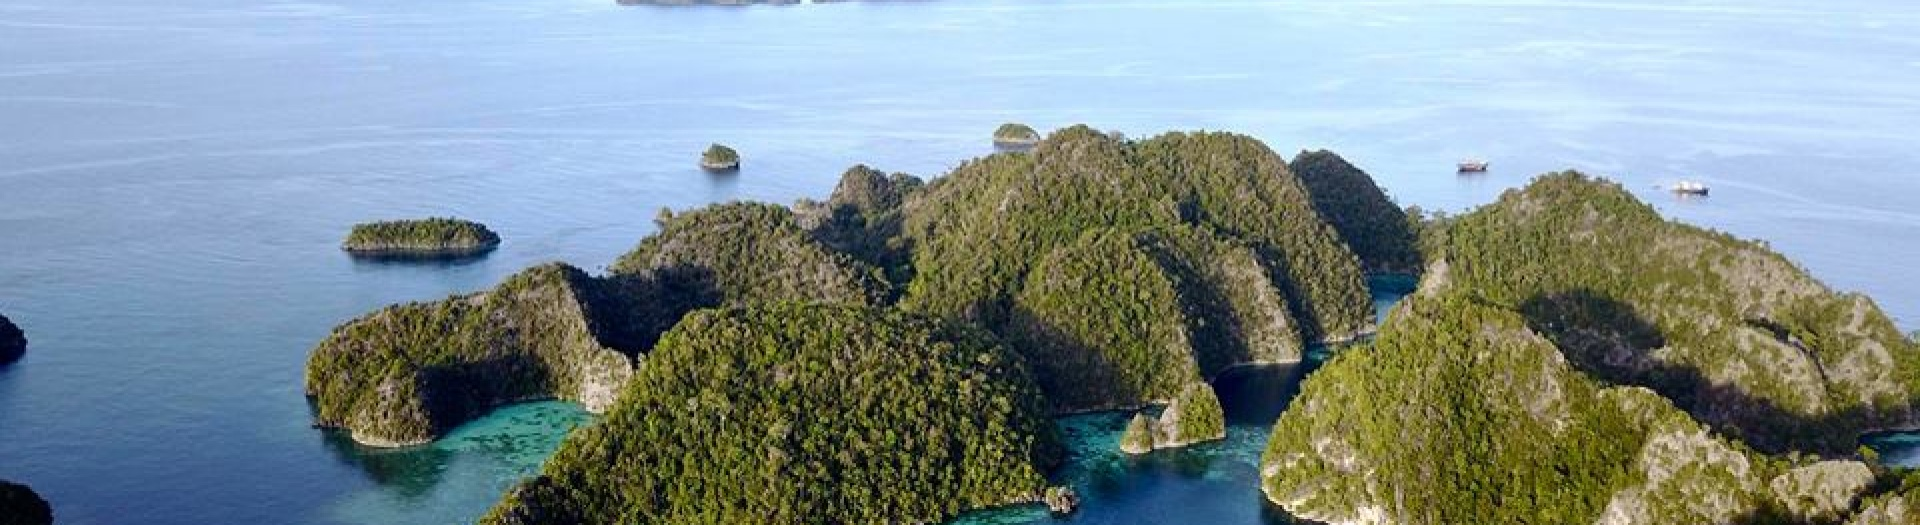 Unforgettable cruise from Raja Ampat to Lembeh Strait 12 nights